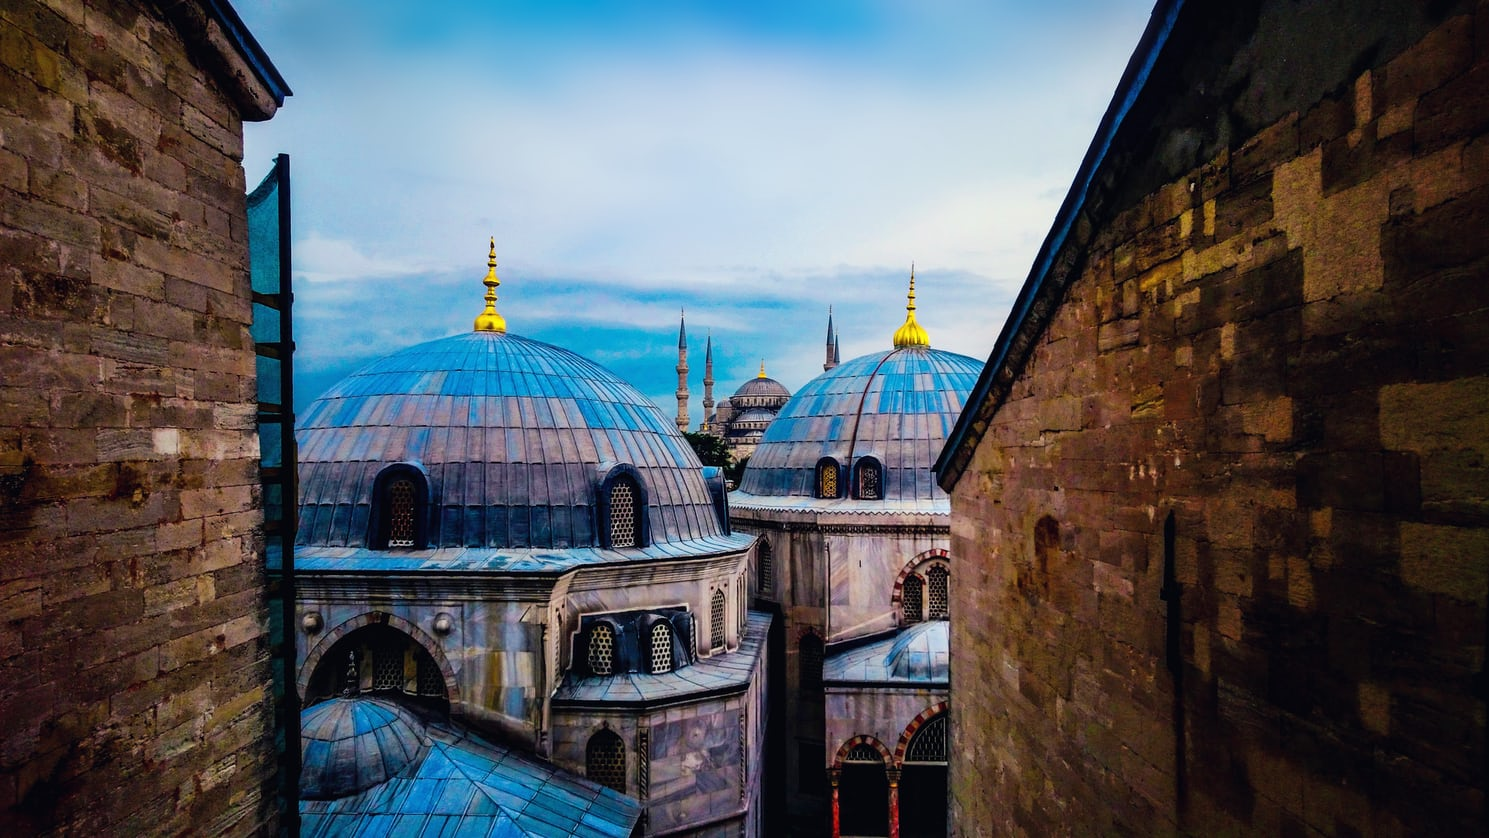 Hagia Sophia Museum | Blaque X on Unsplash